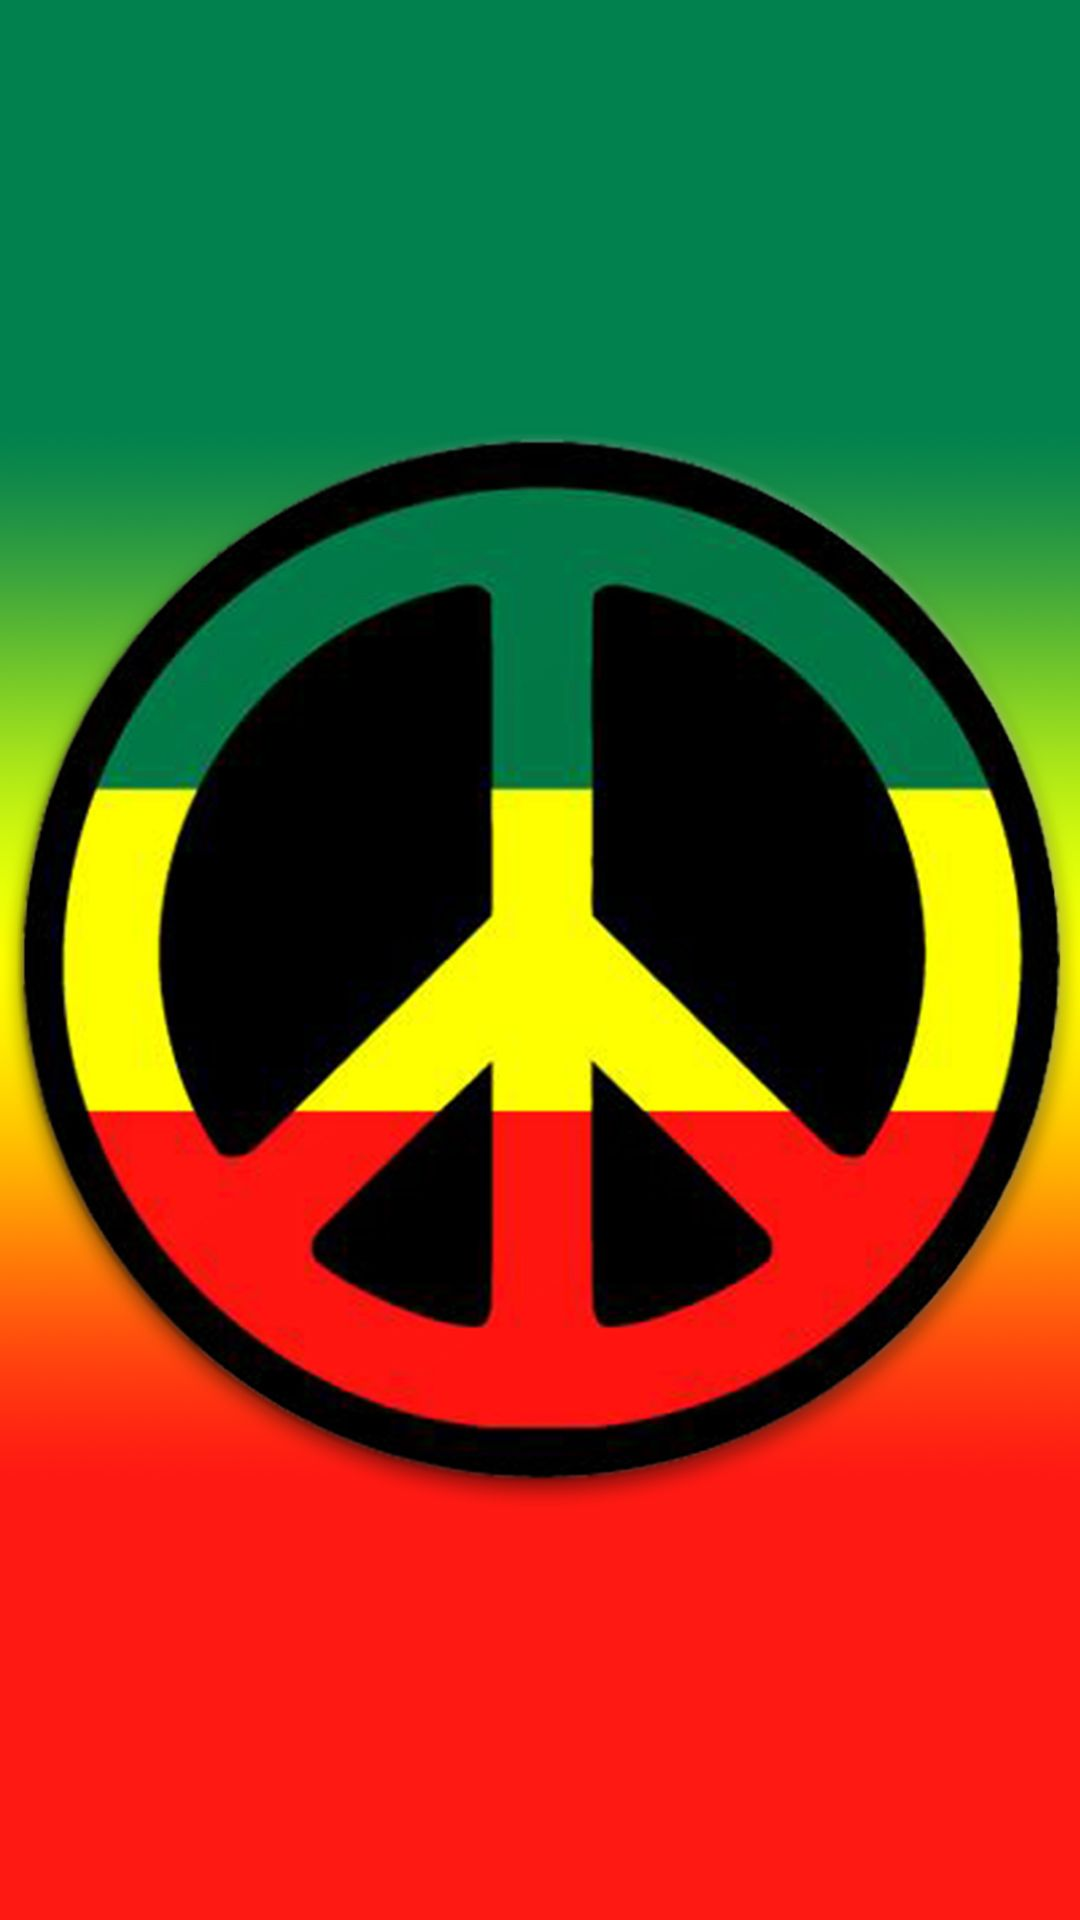 Hd peace sign wallpaper peace signs pinterest peace and hd peace sign wallpaper biocorpaavc